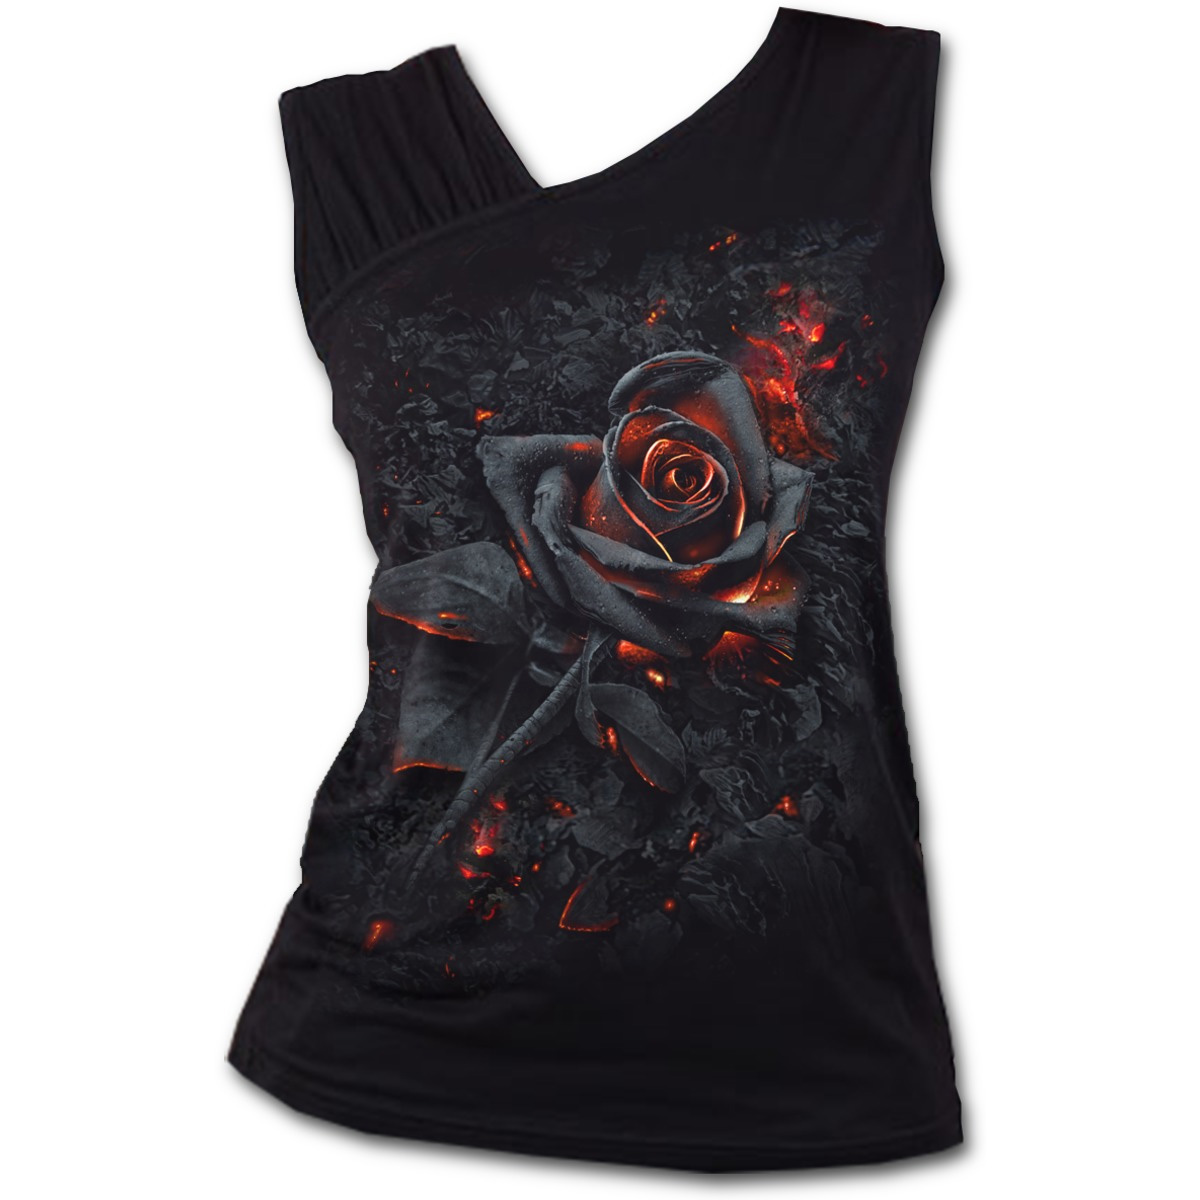 SPIRAL-DIRECT-Ladies-Black-Goth-BURNT-ROSE-Fire-Slant-Vest-Top-All-Sizes thumbnail 11